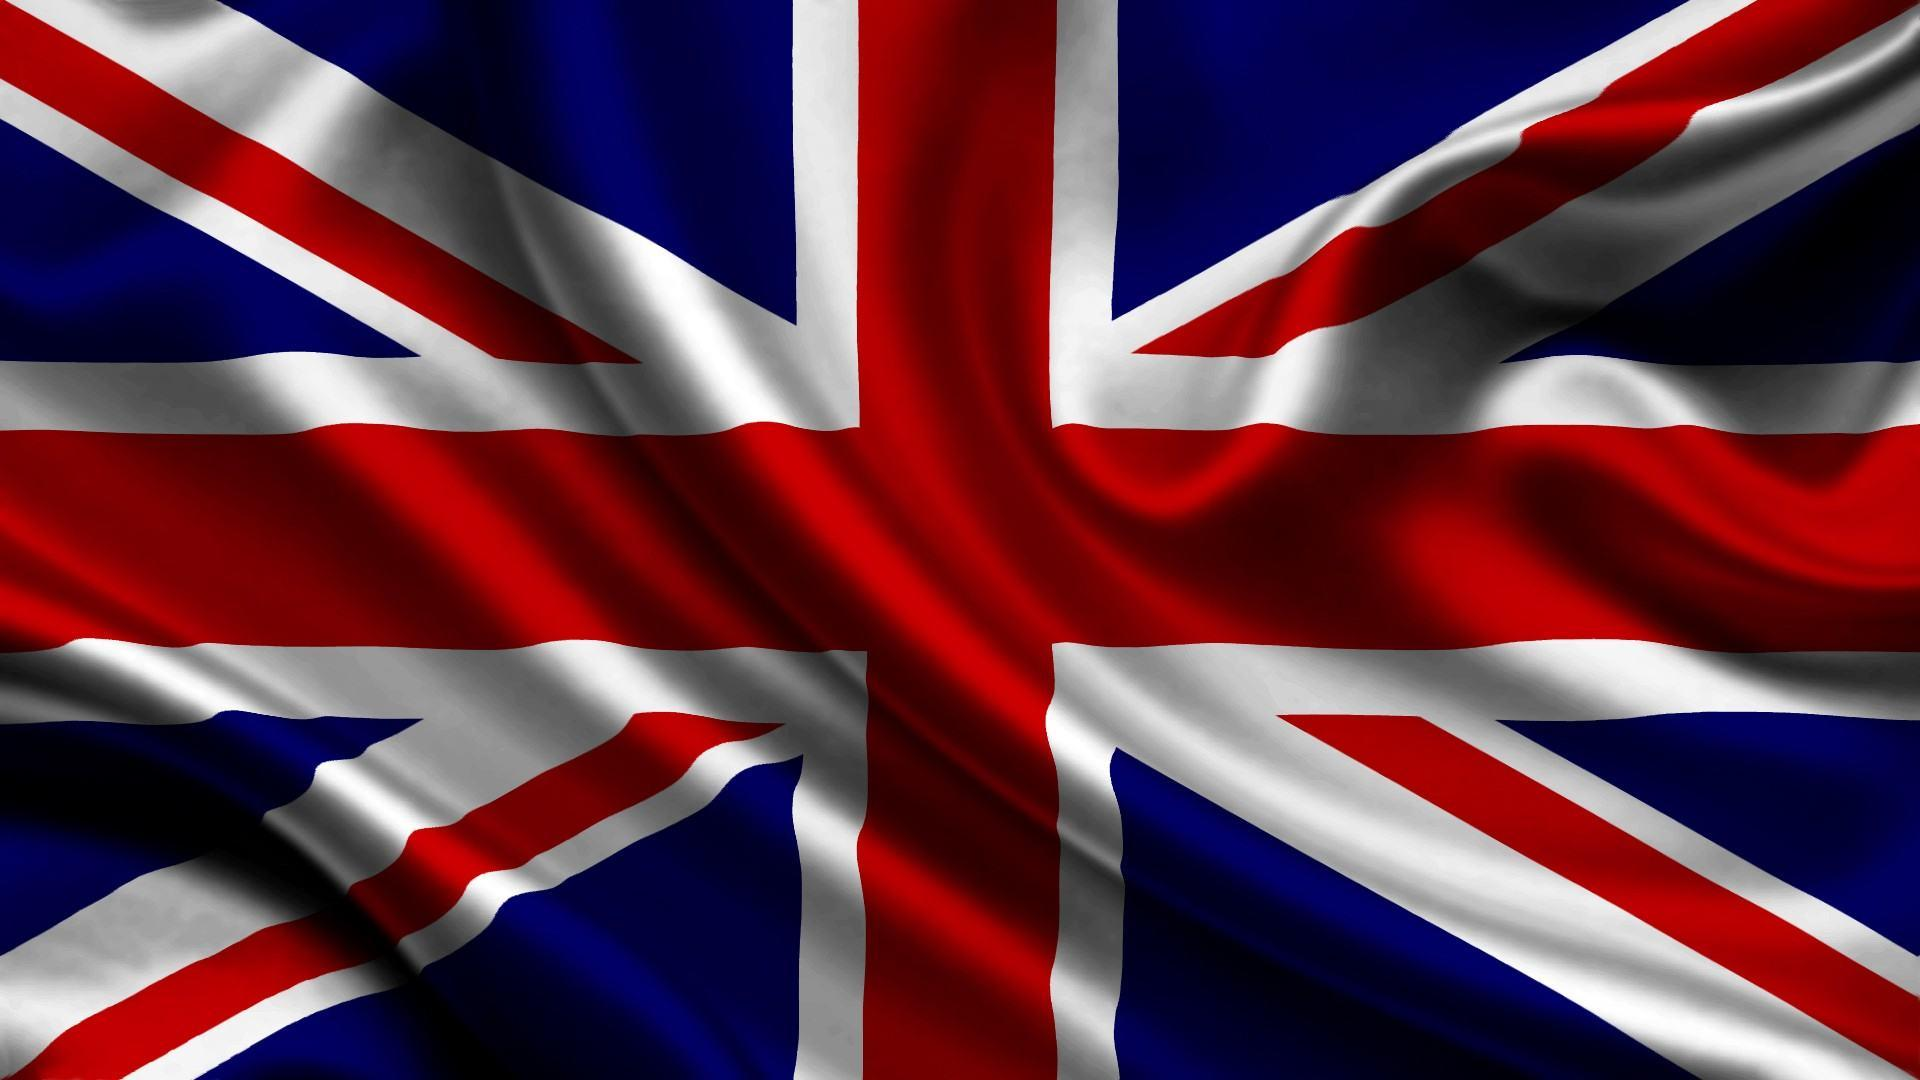 waving union jack flag hd free wallpaper